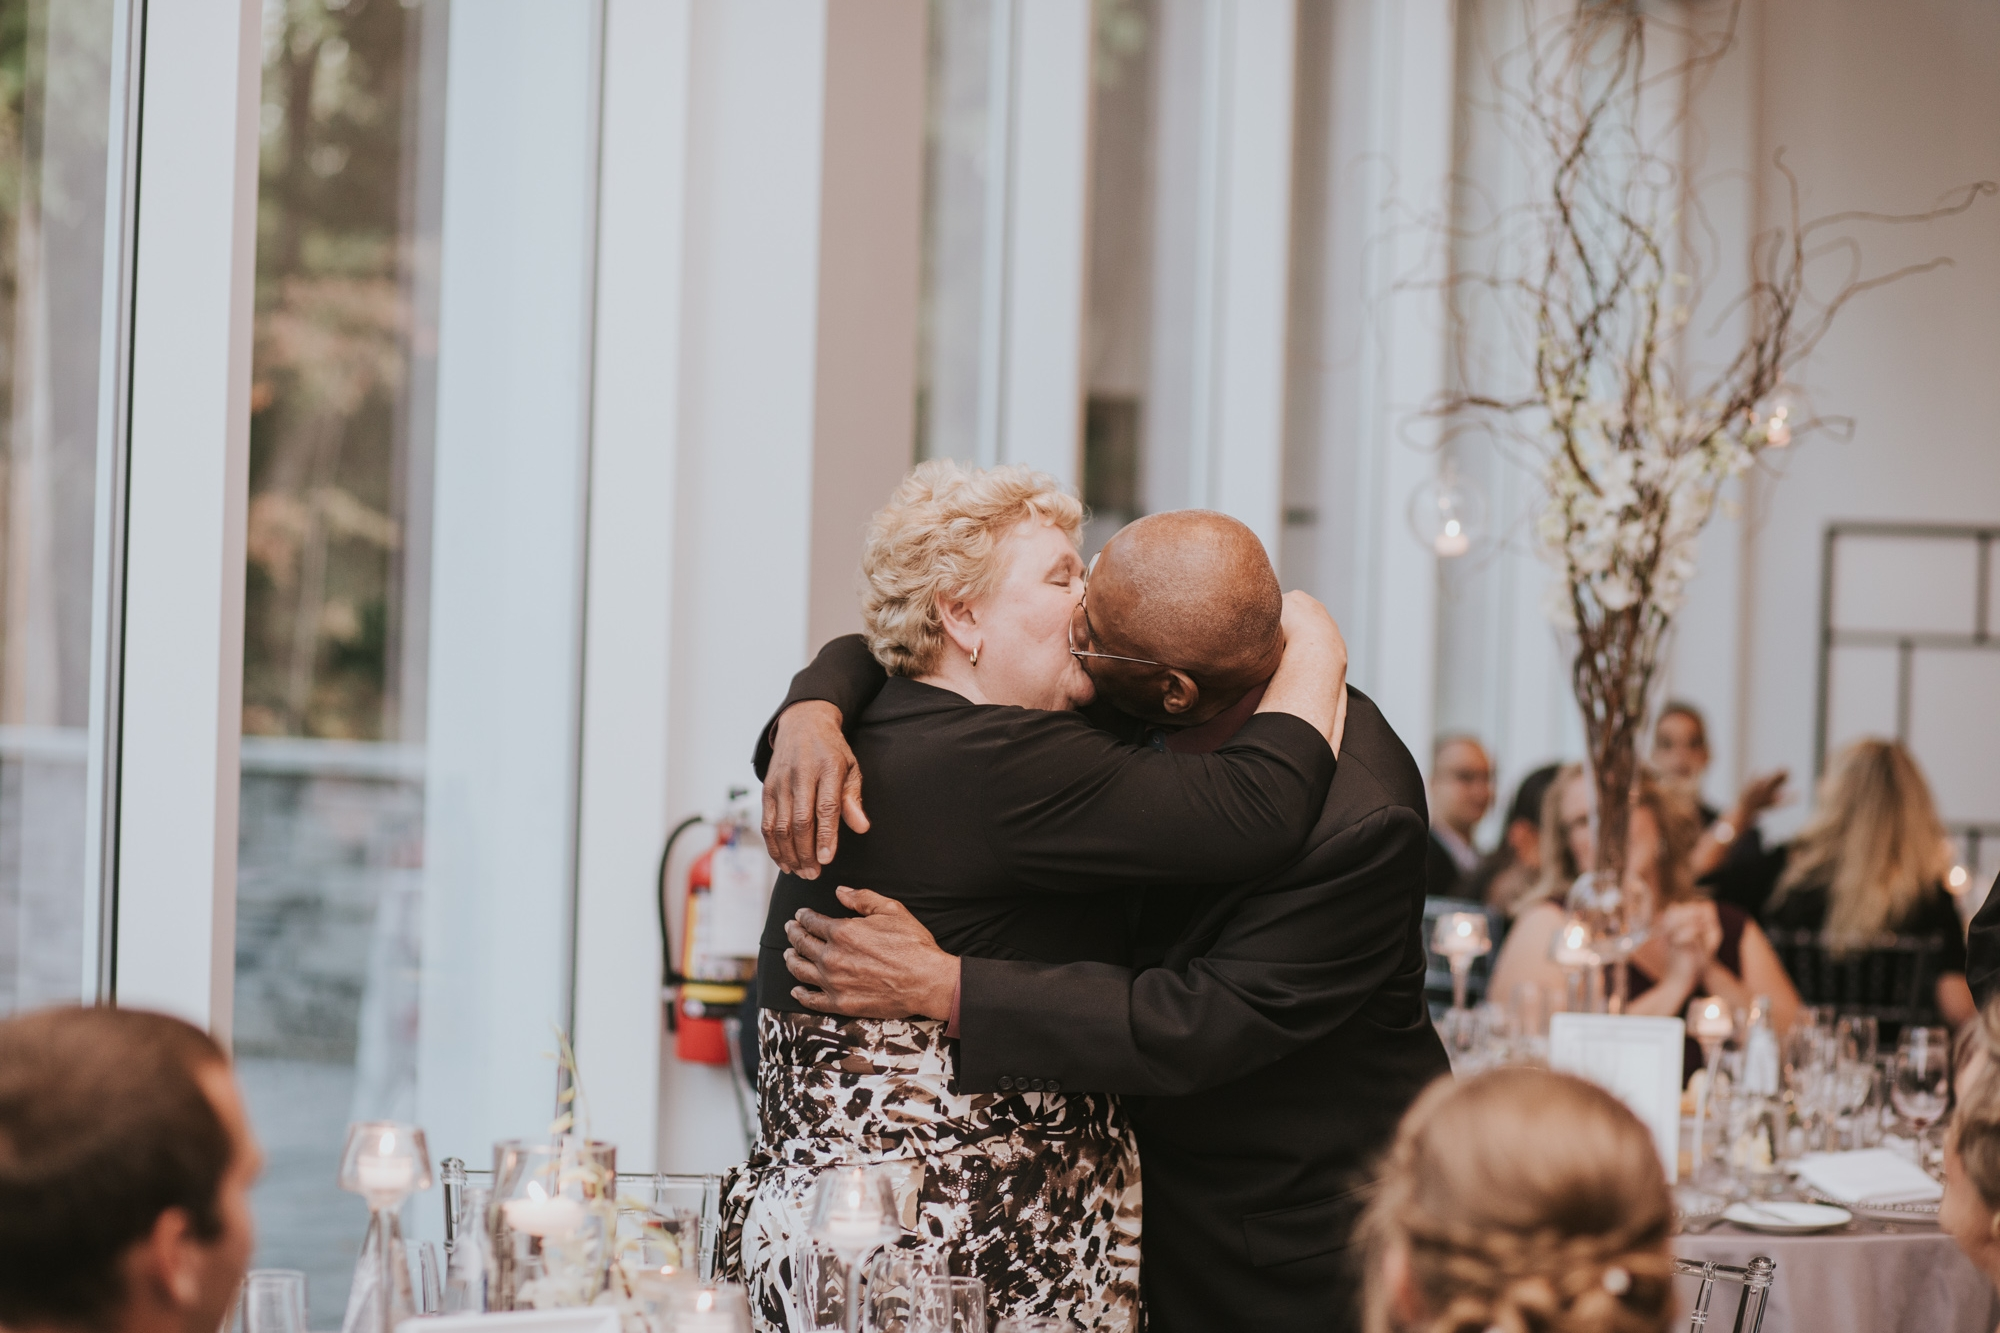 If you have been married the longest of all the wedding guests, you have to show the couple how to kiss. Its a rule.